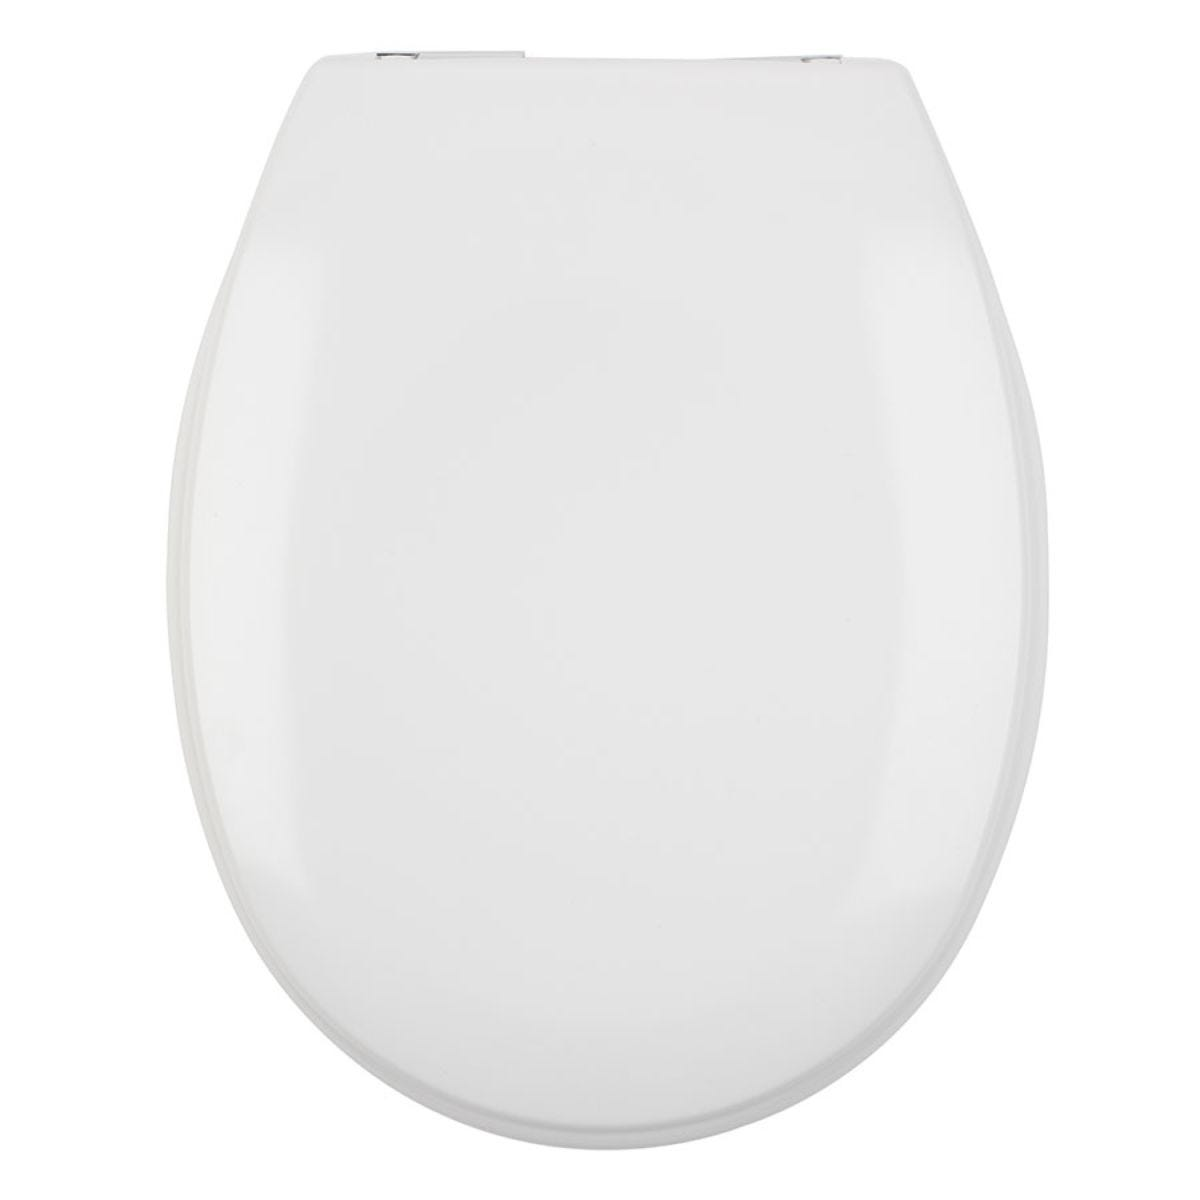 Beldray Duroplast Easy Fit Soft Close Toilet Seat - White